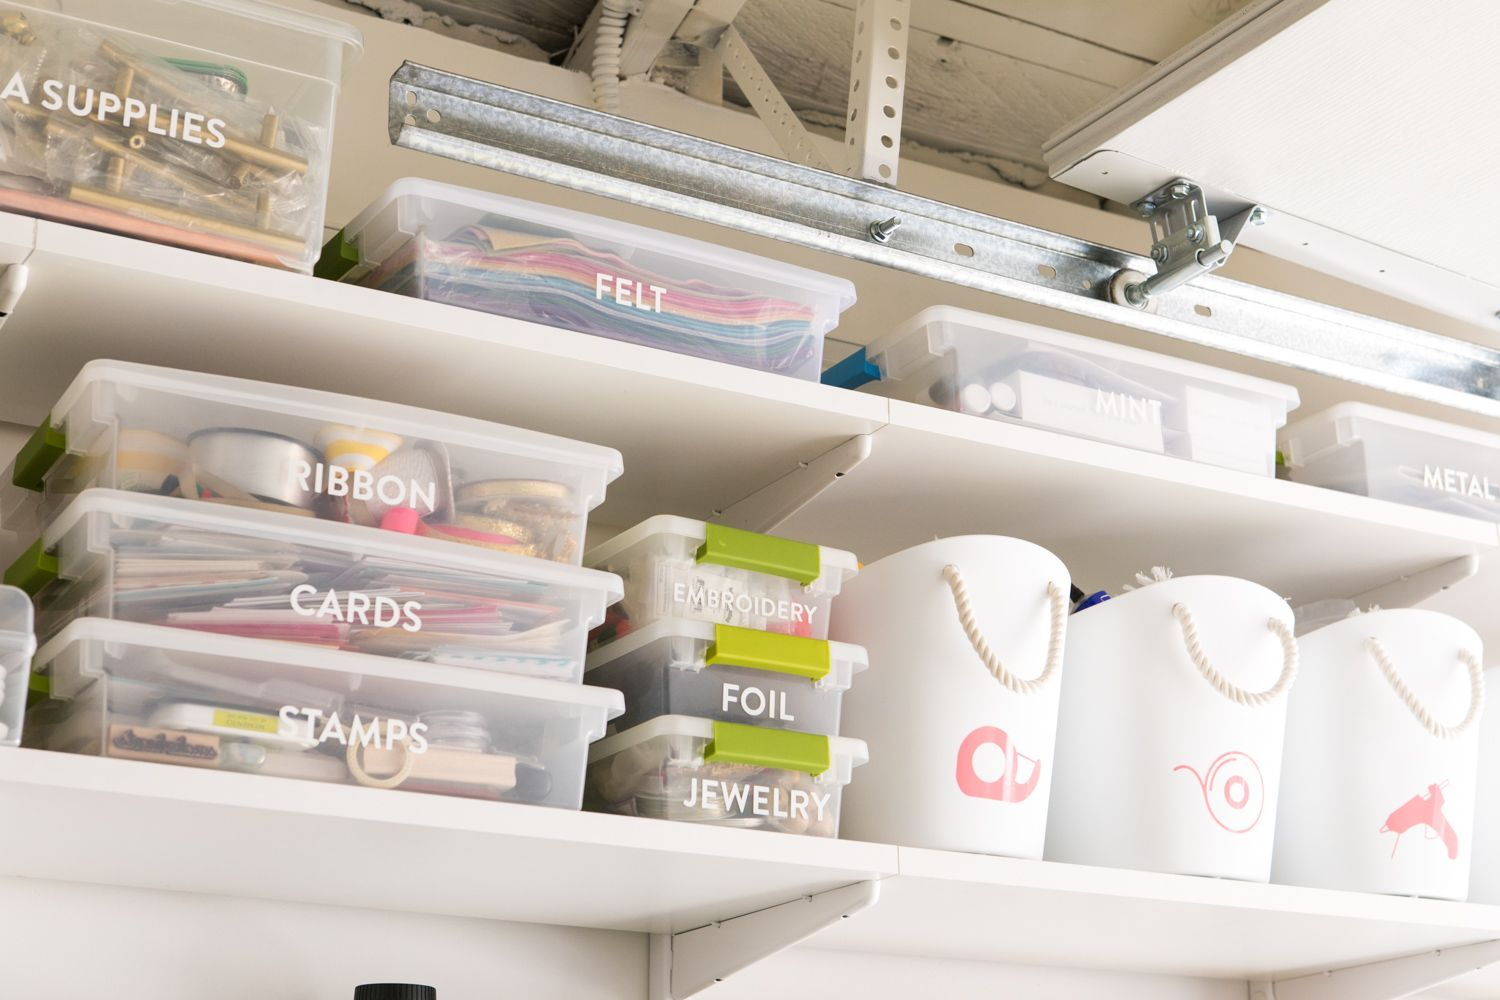 Garage Into Home Studio and Office Reveal - Sarah Hearts#garage #hearts #home #office #reveal #sarah #studio